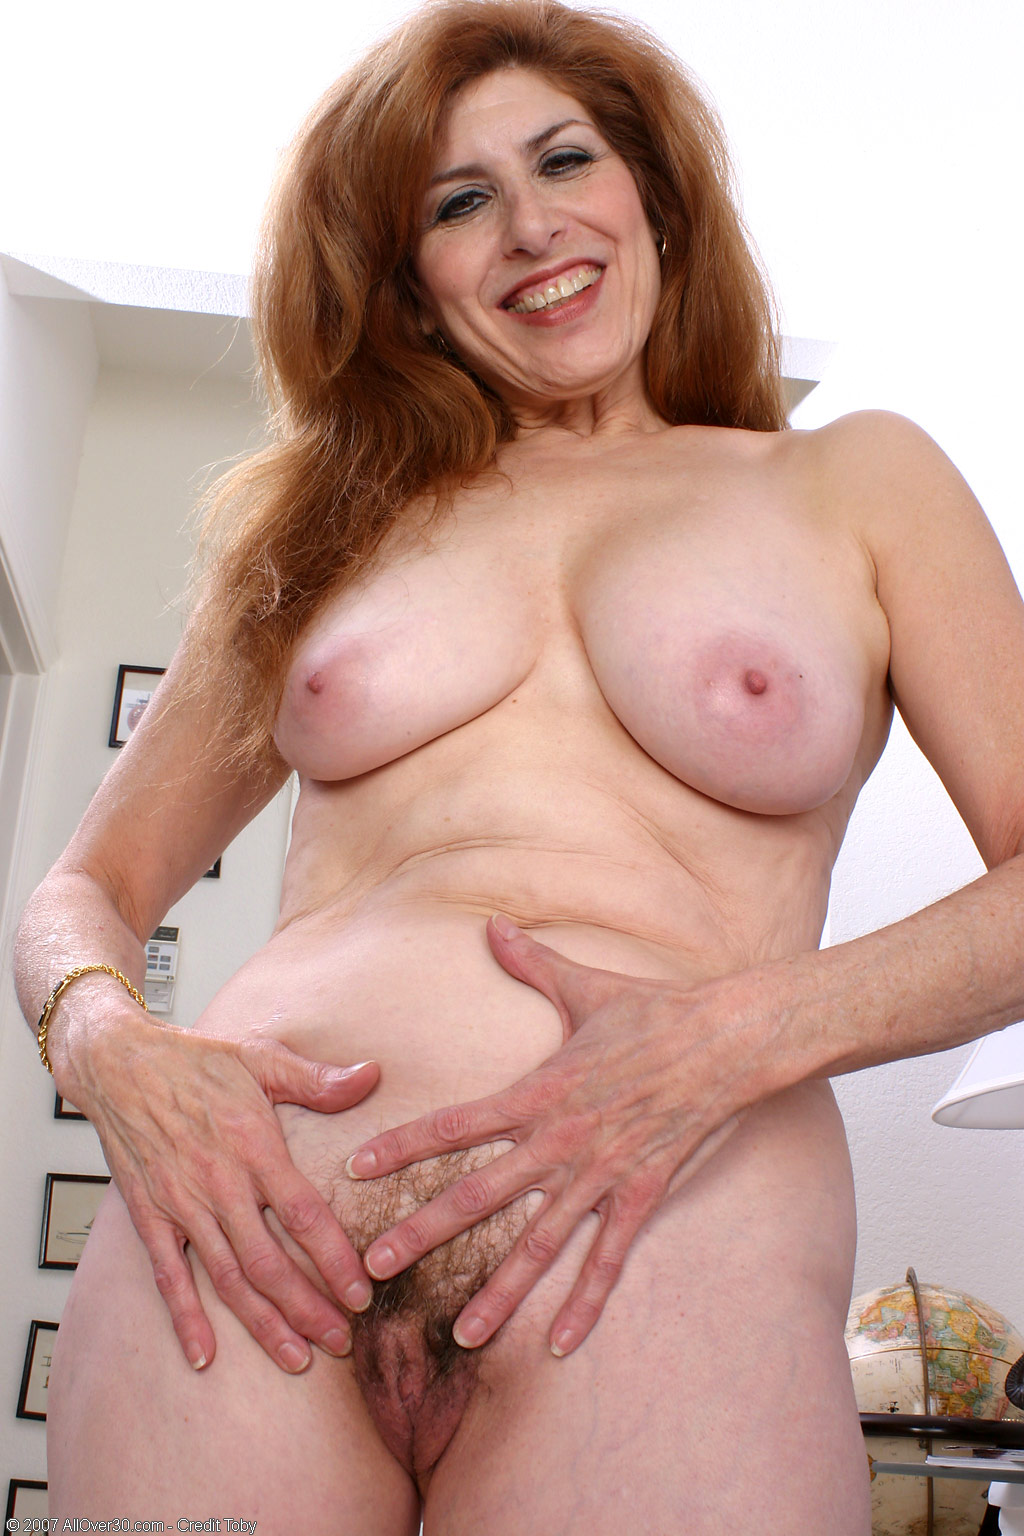 Naked mature women galleries